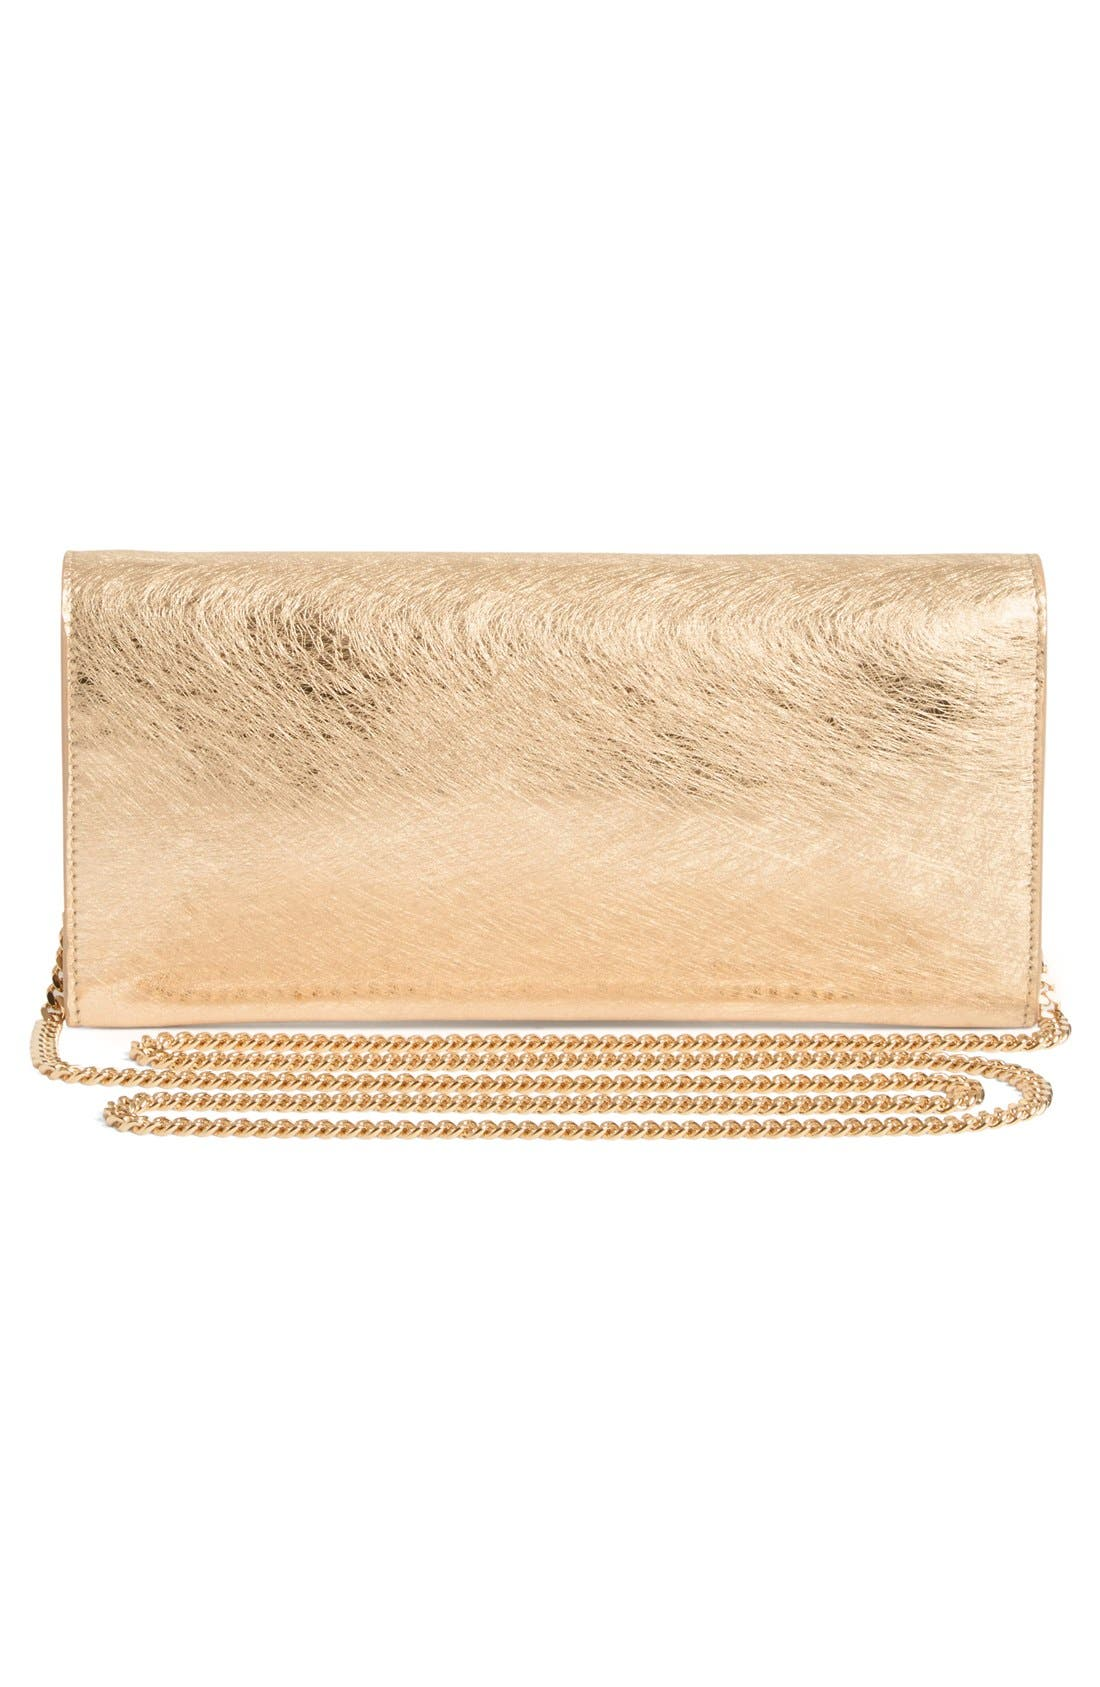 'Milla' Etched Metallic Spazzolato Leather Flap Clutch,                             Alternate thumbnail 2, color,                             Gold